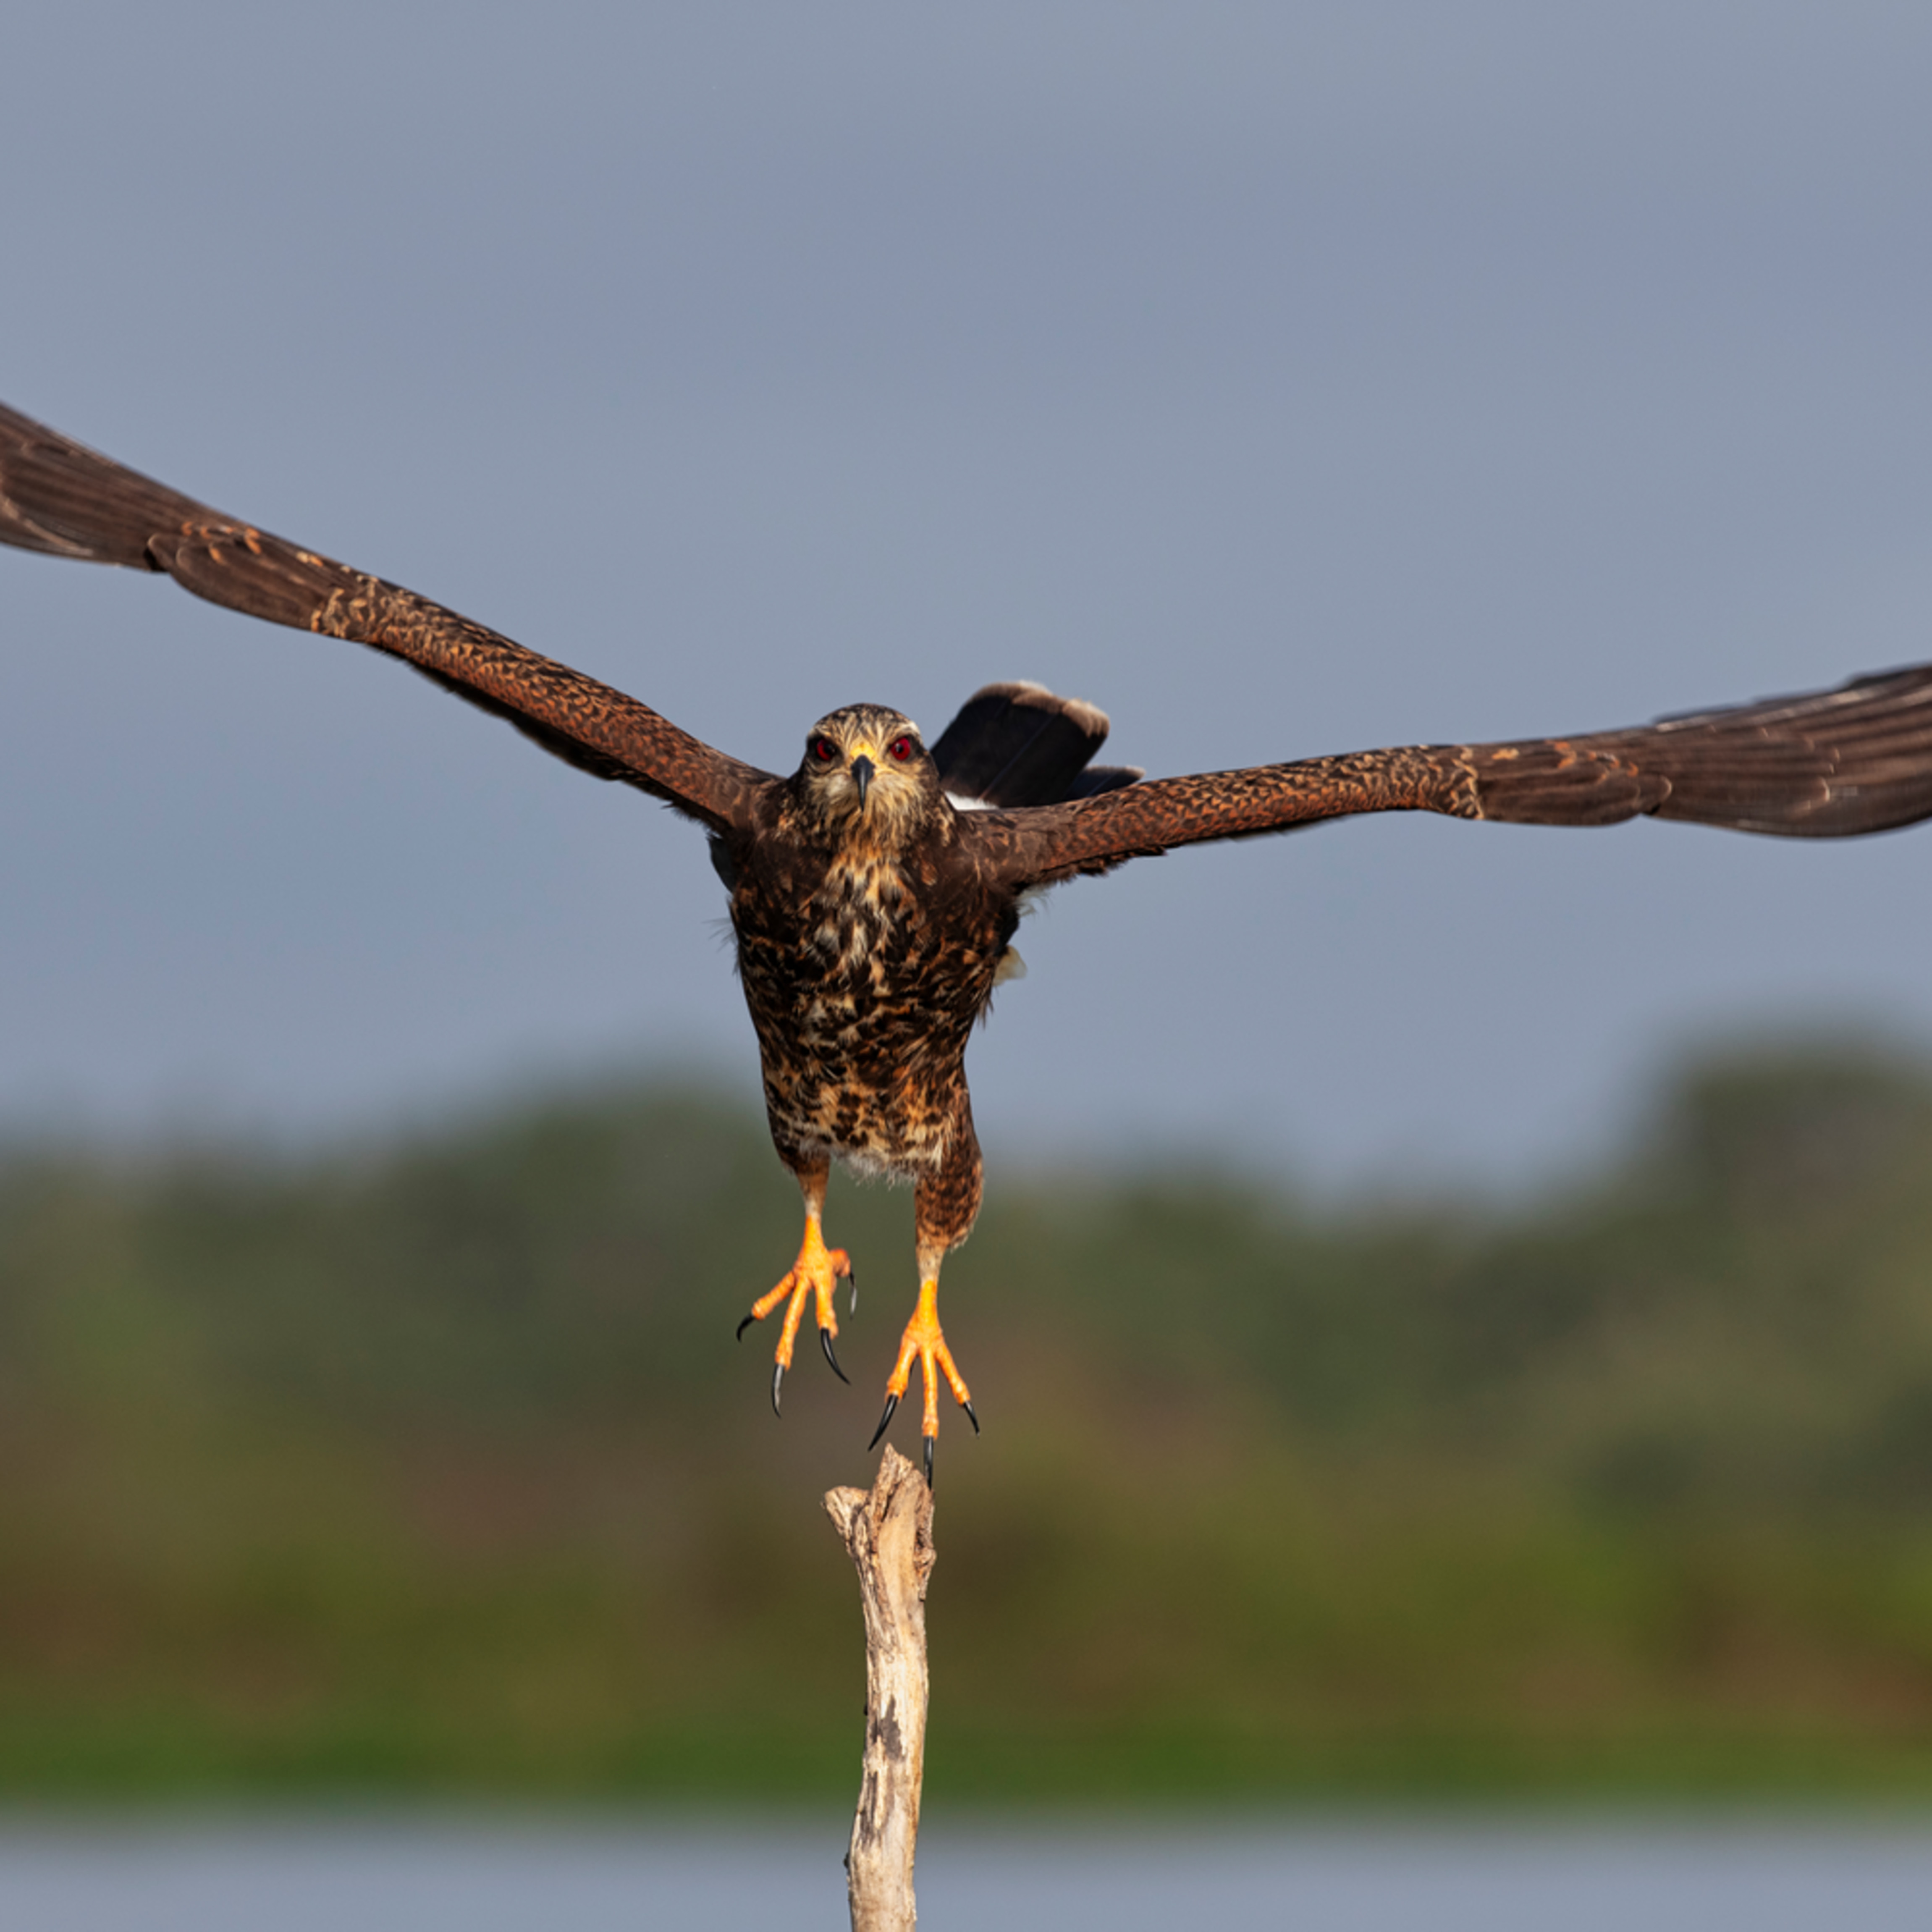 Andy crawford photography snail kite 4 rs6uaf